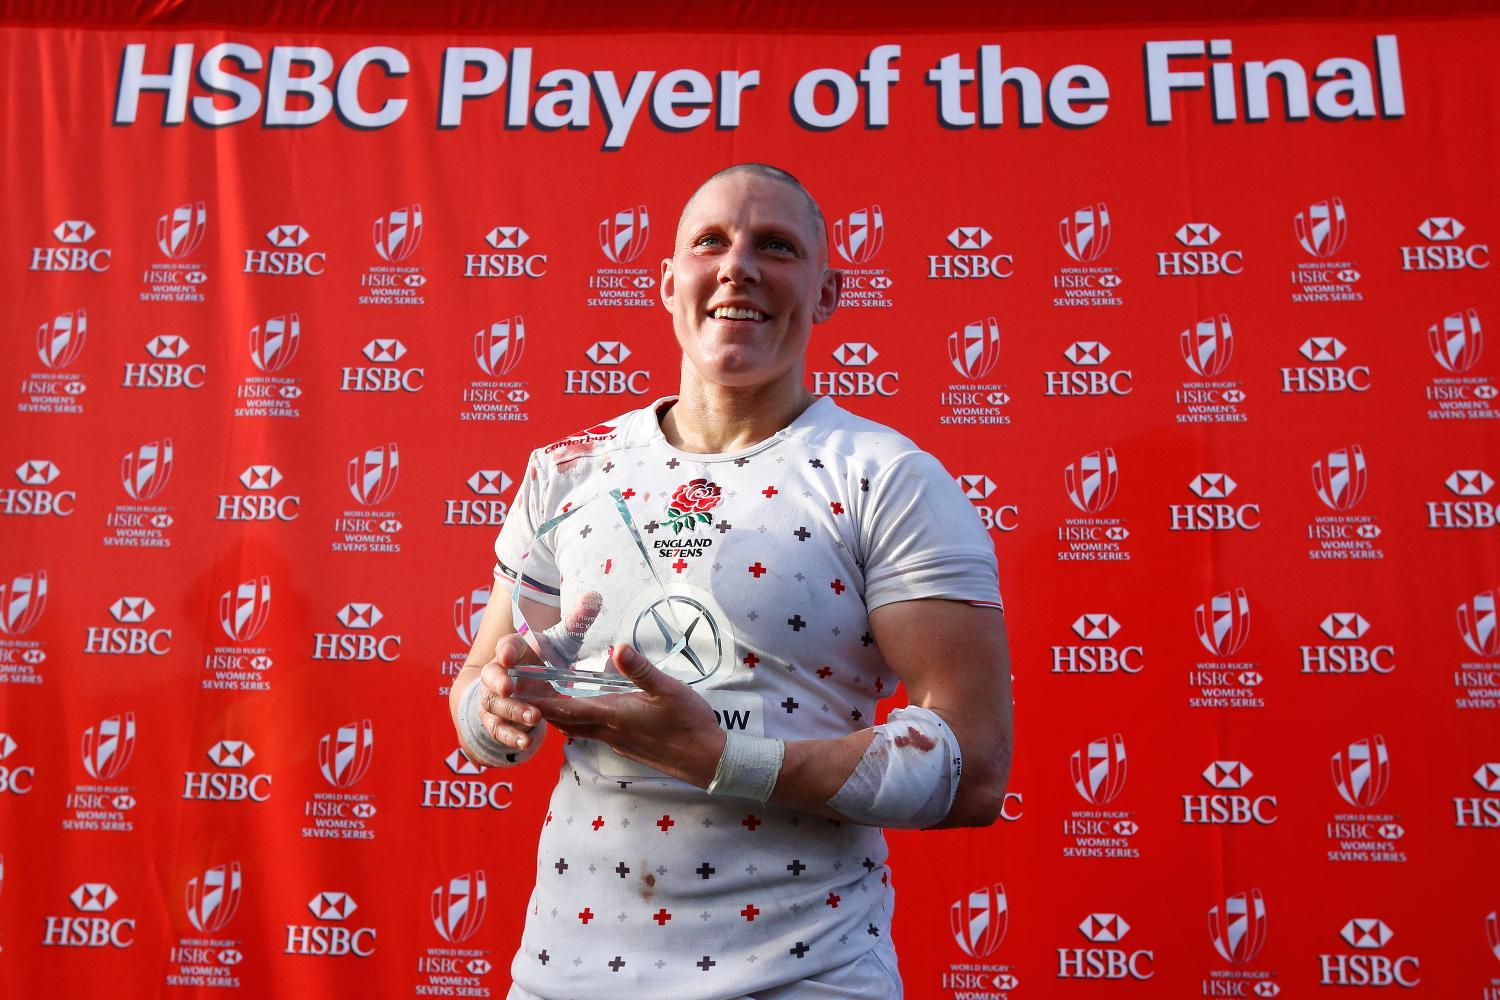 Heather Fisher named Player of the Final.